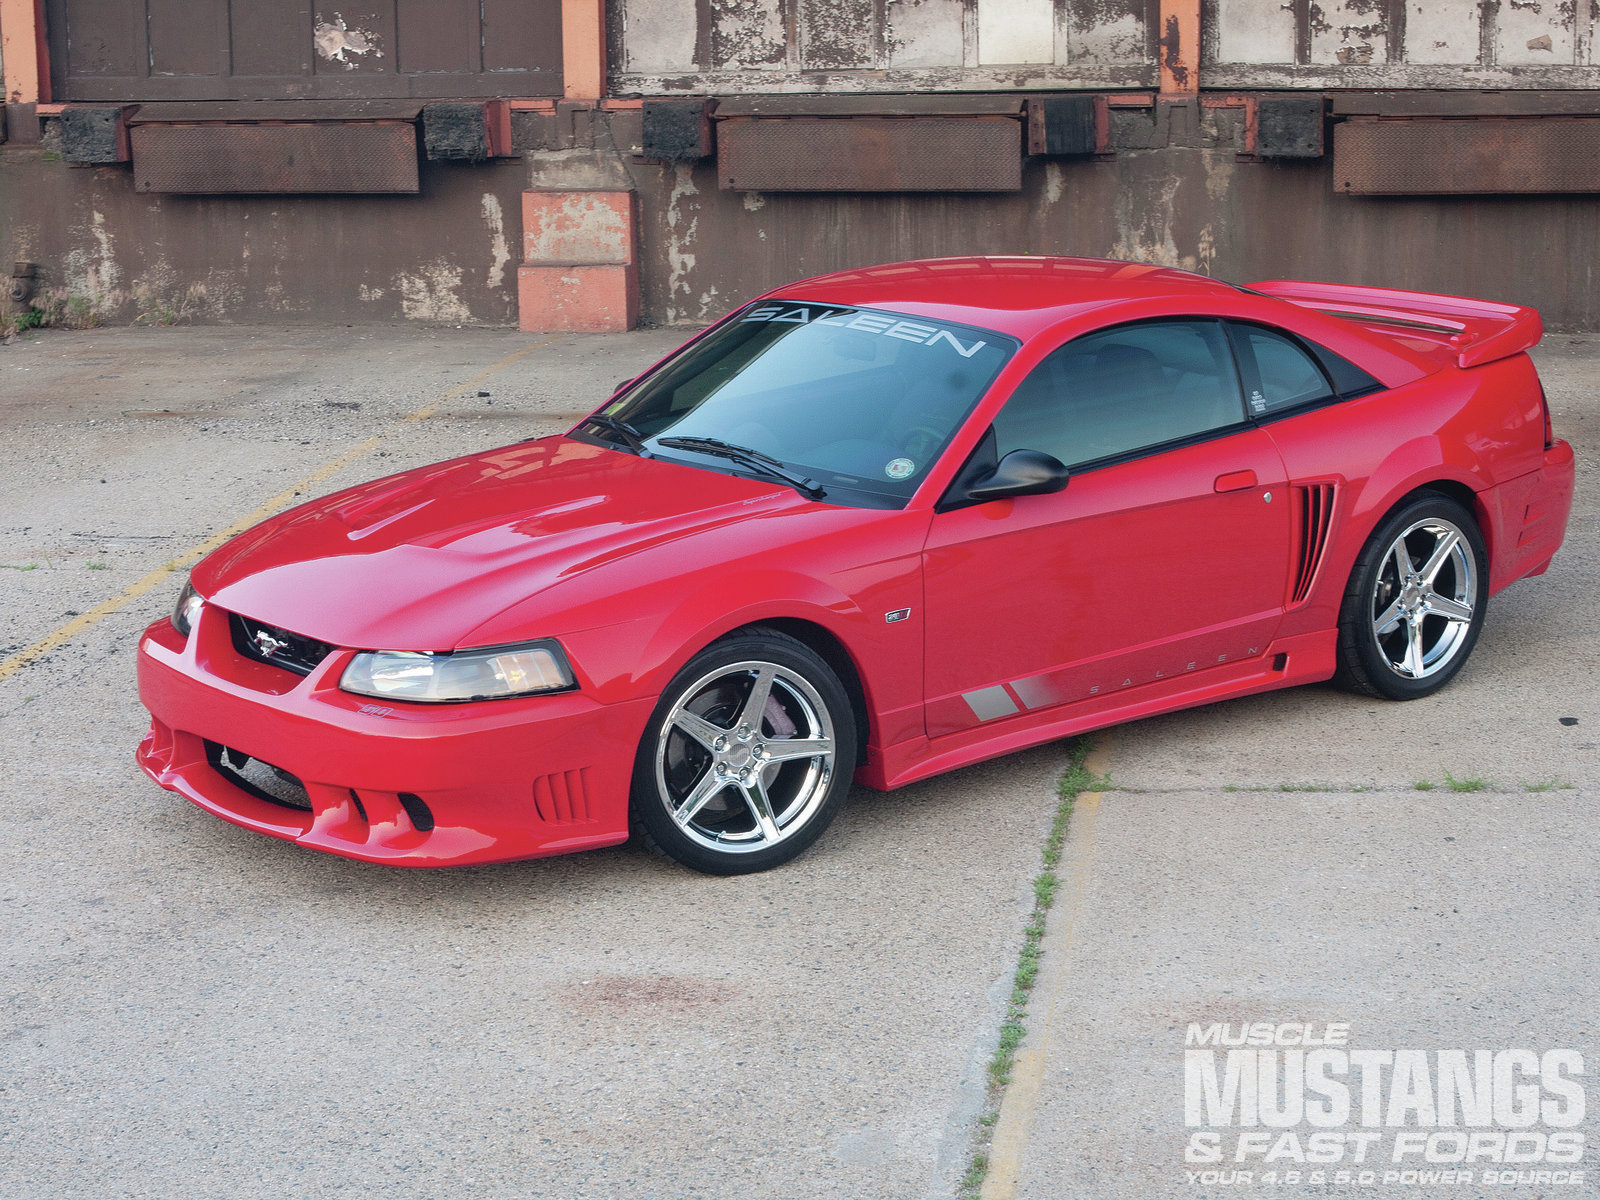 What started as a normal Mustang Fastback restoration morphed into the full blown widebody custom you see here.